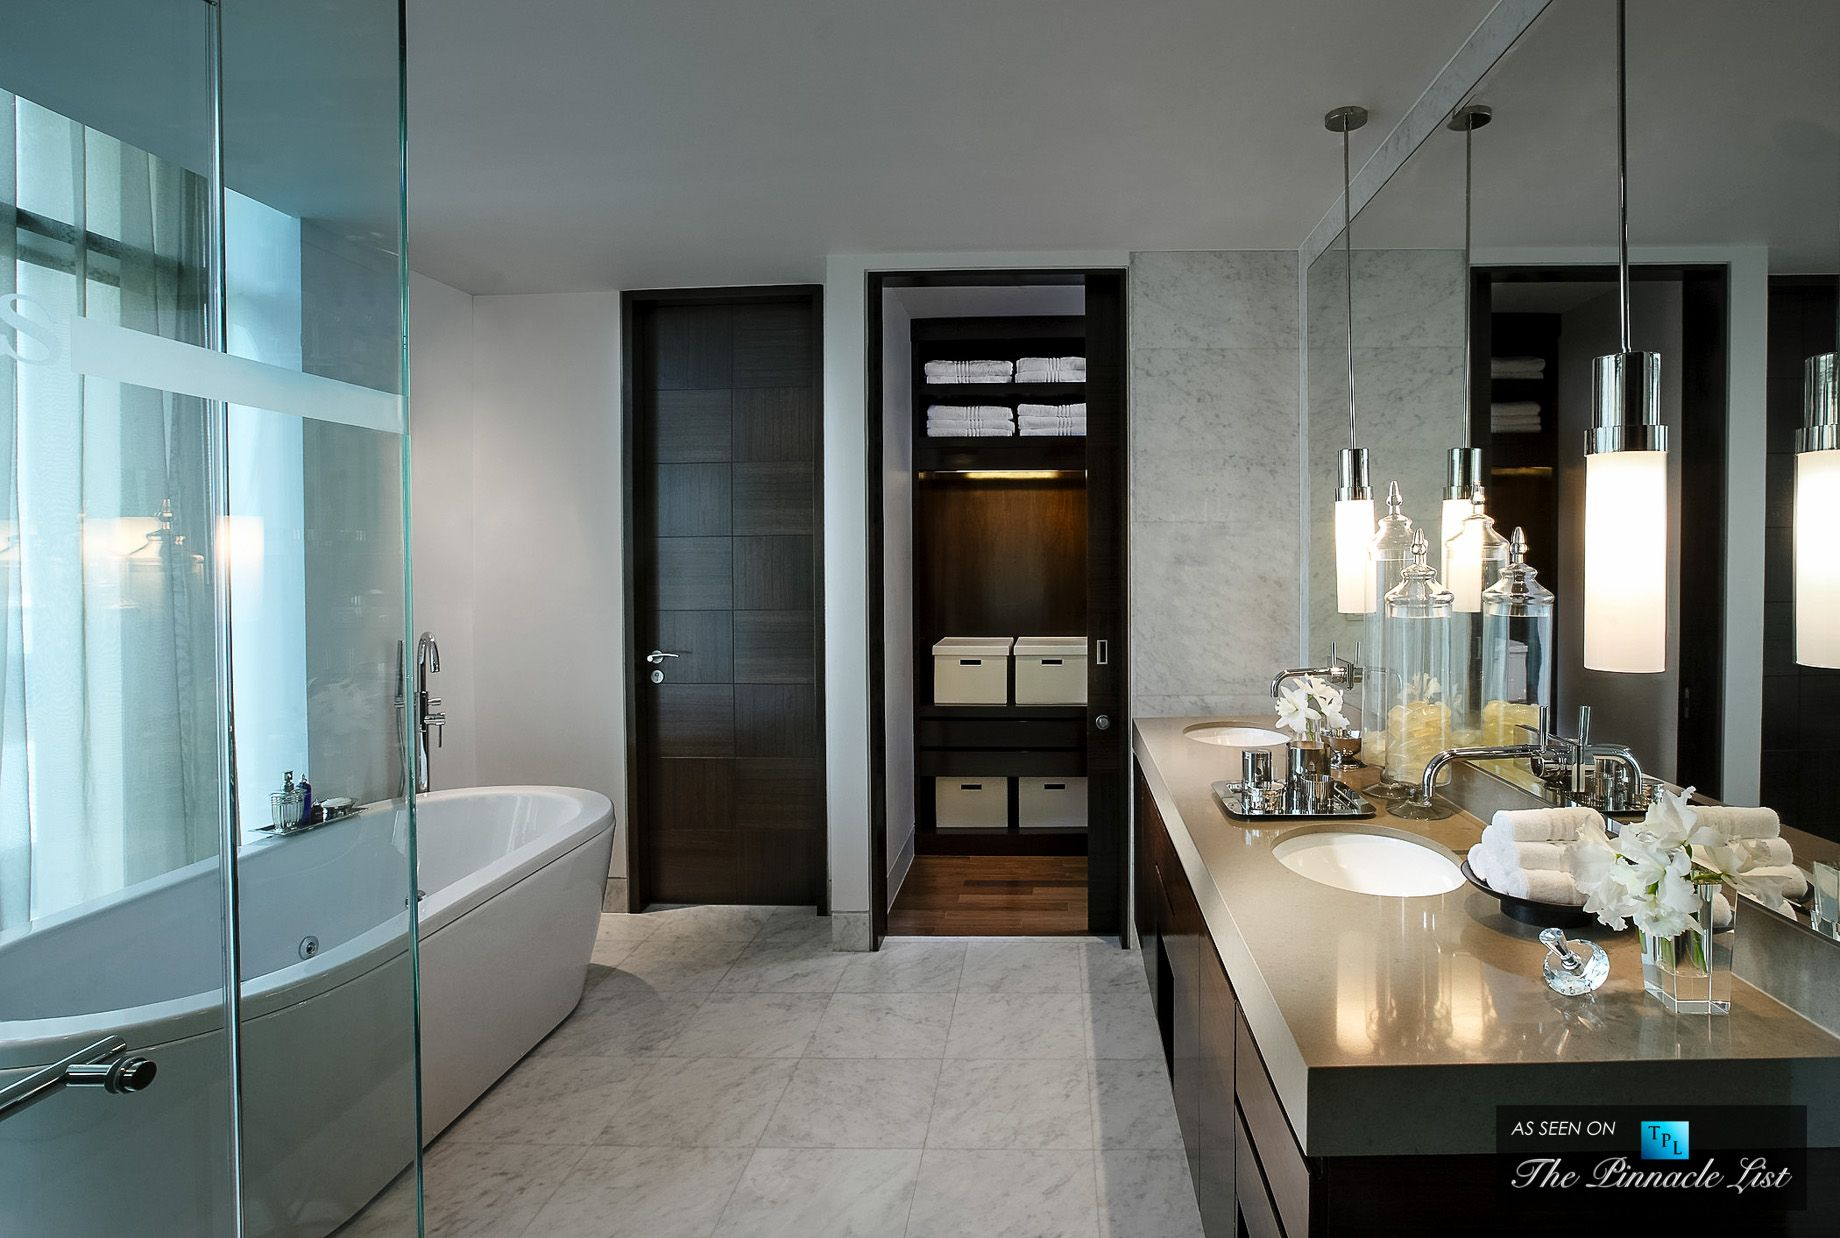 St Regis Luxury Hotel Bangkok Thailand Residence Bathroom Decor Pinterest Linen